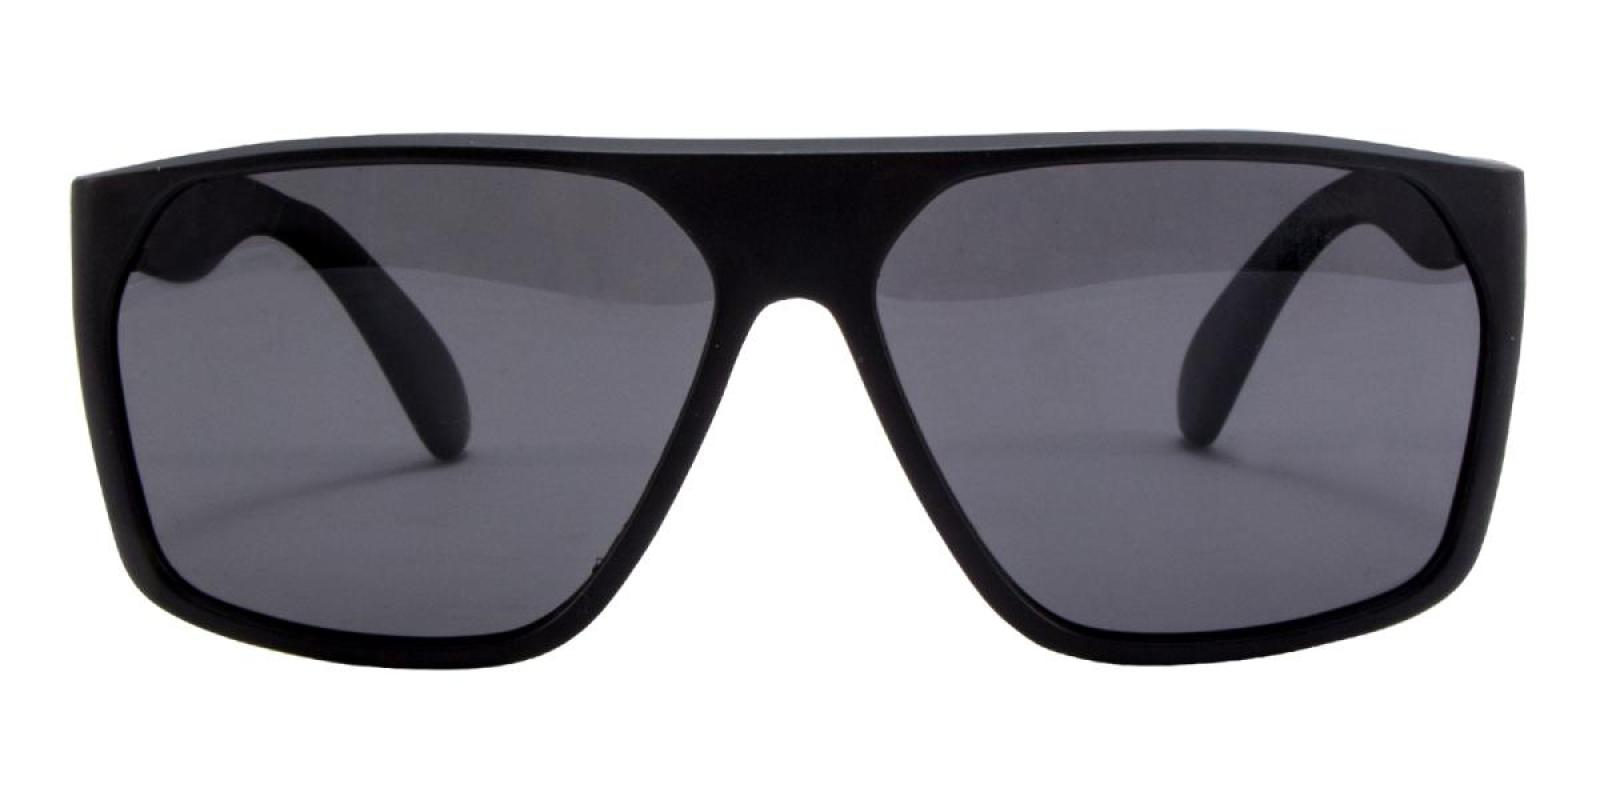 Blackore-Black-Geometric-TR-Sunglasses-additional2